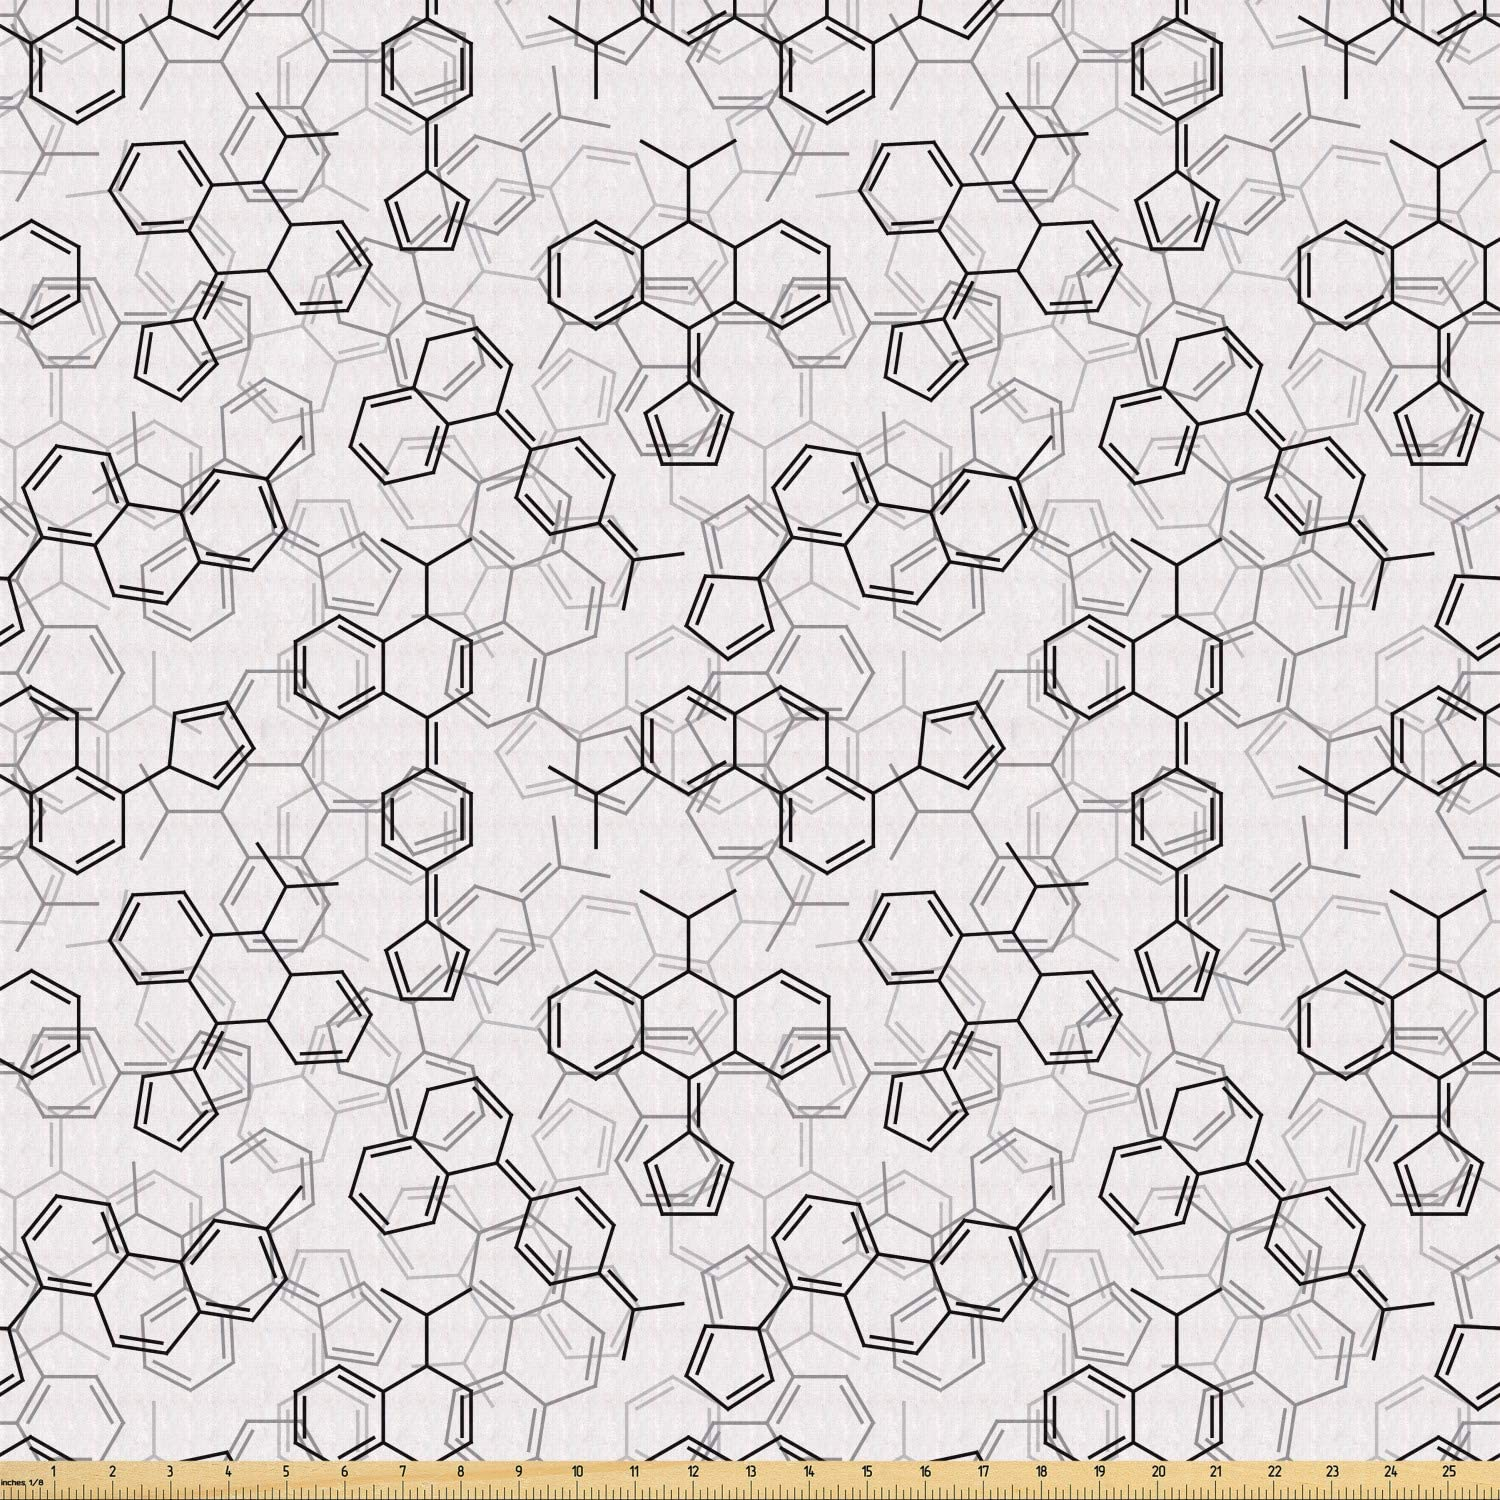 Lunarable Science Fabric by The Yard, Monochrome Arrangement of Complex Microscopic Structures Chemistry Theme, Stretch Knit Fabric for Clothing Sewing and Arts Crafts, 1 Yard, Black White